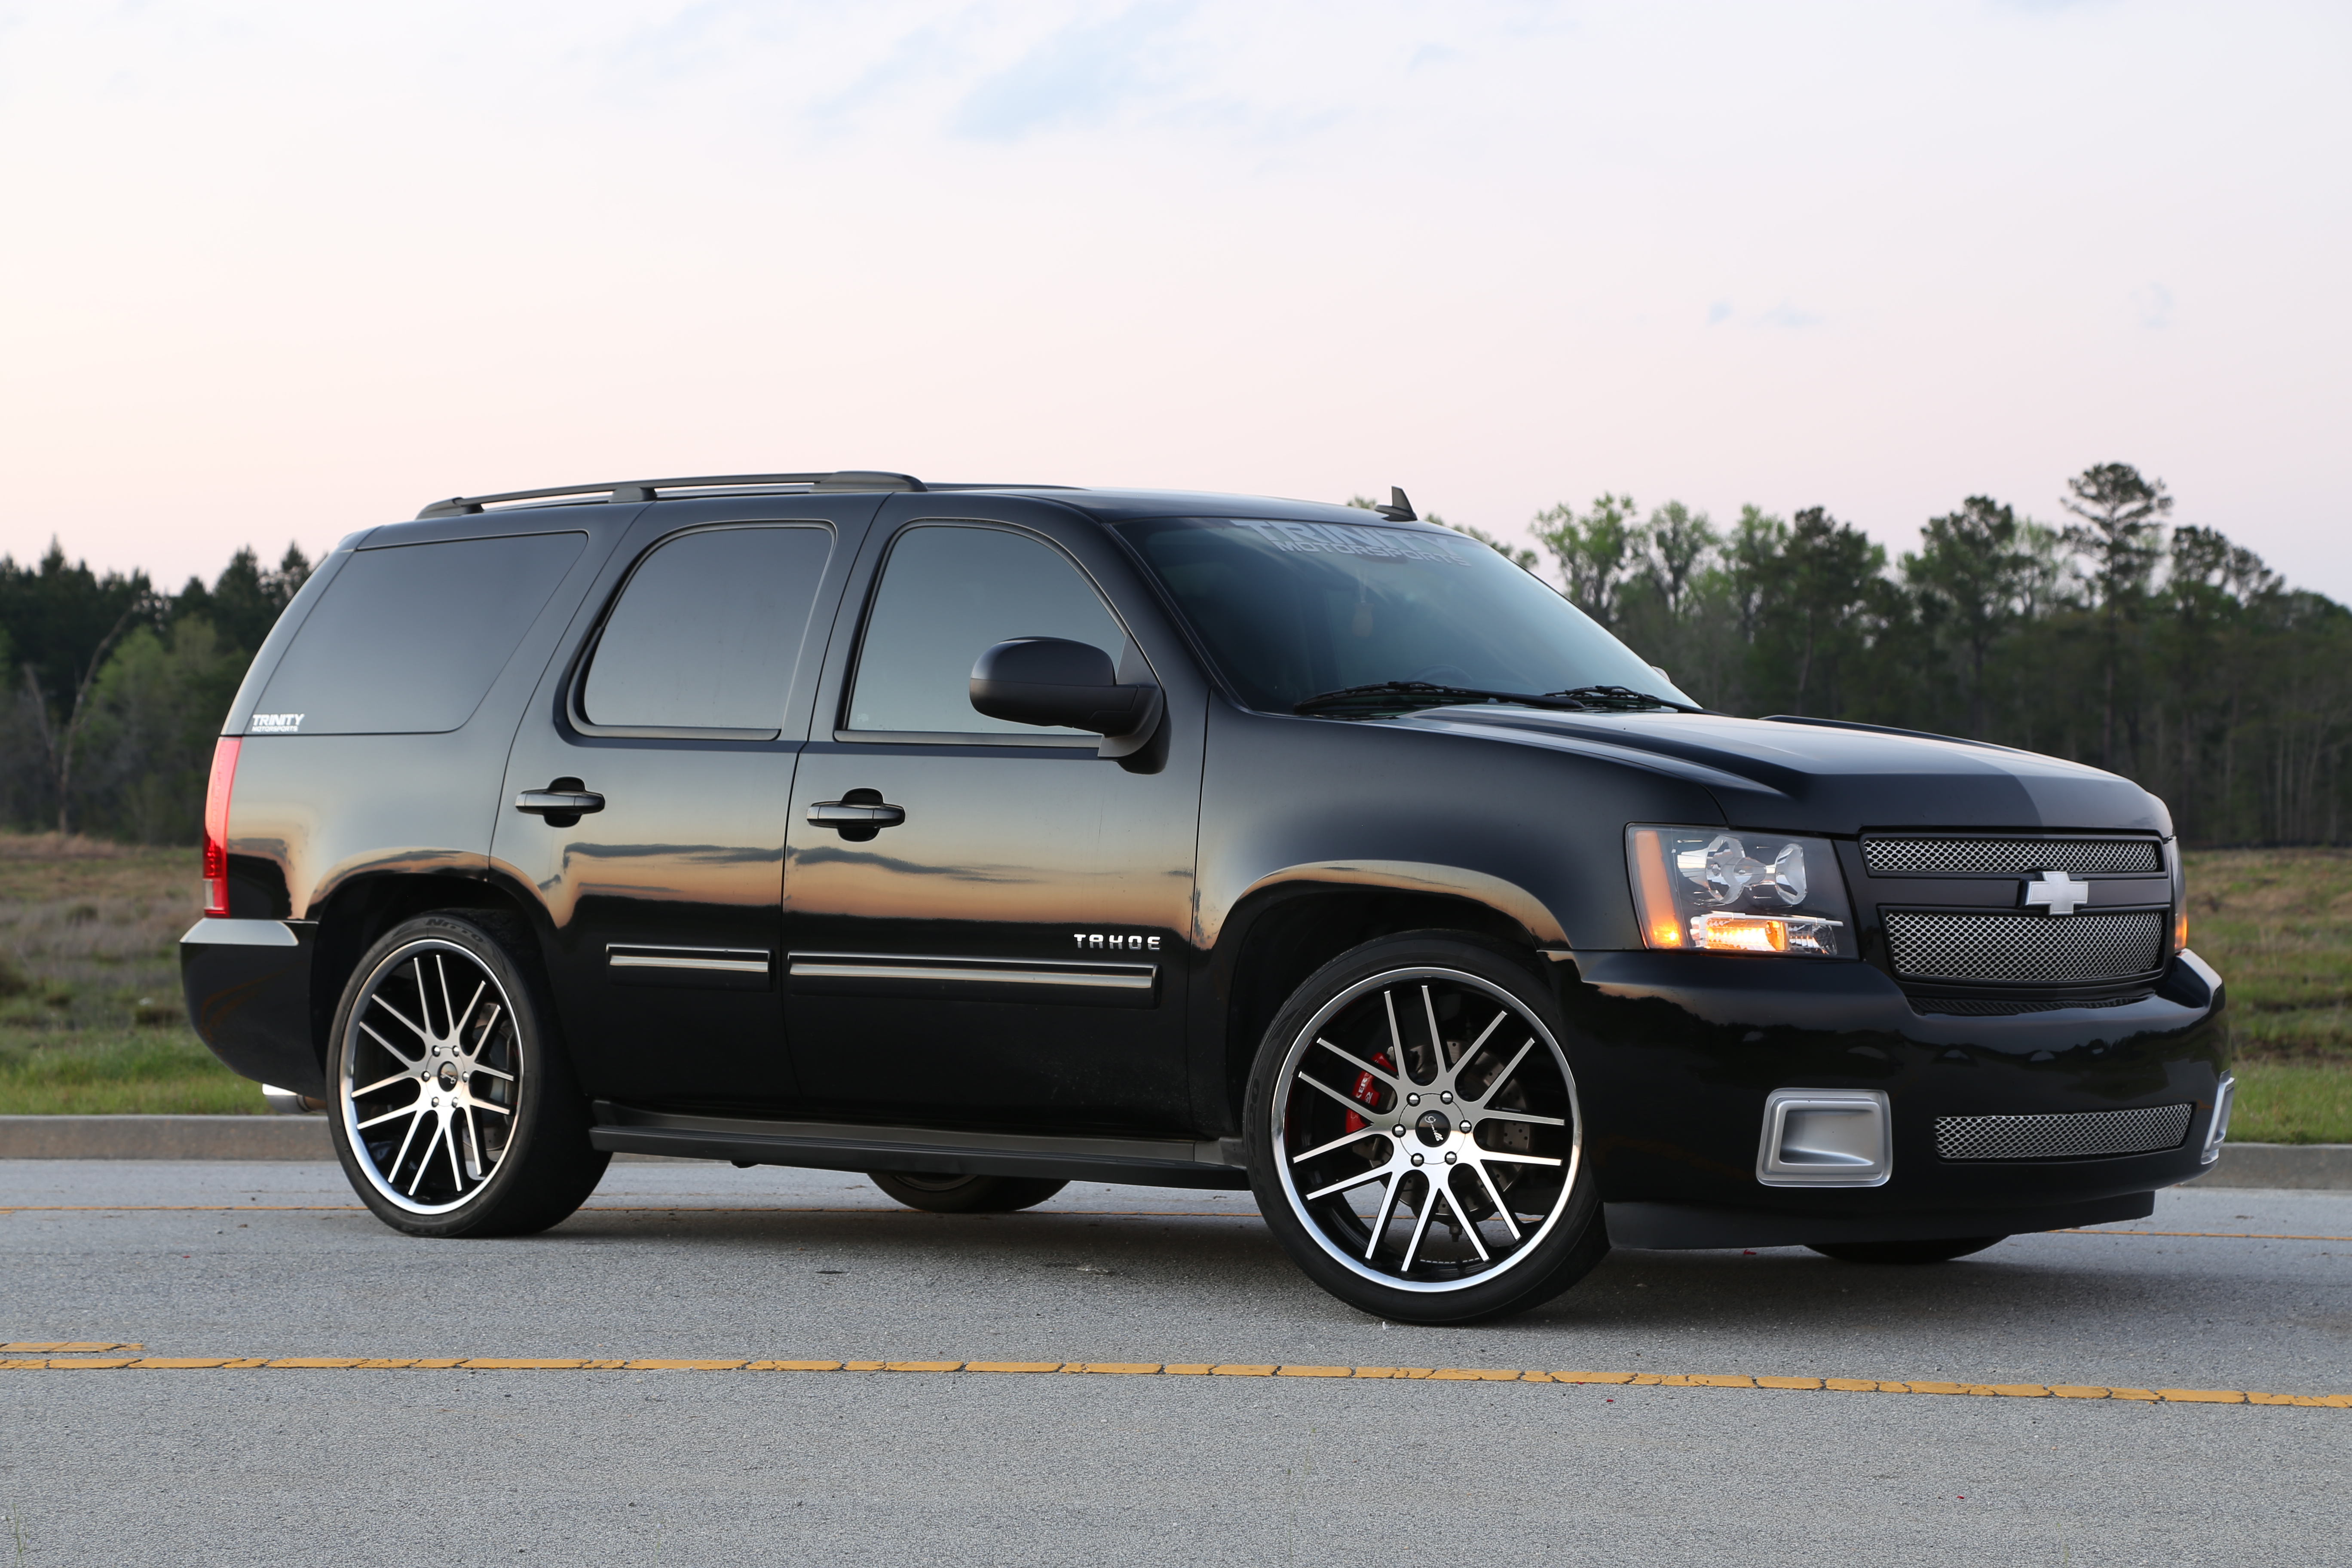 Lowered tahoe on 24s submited images